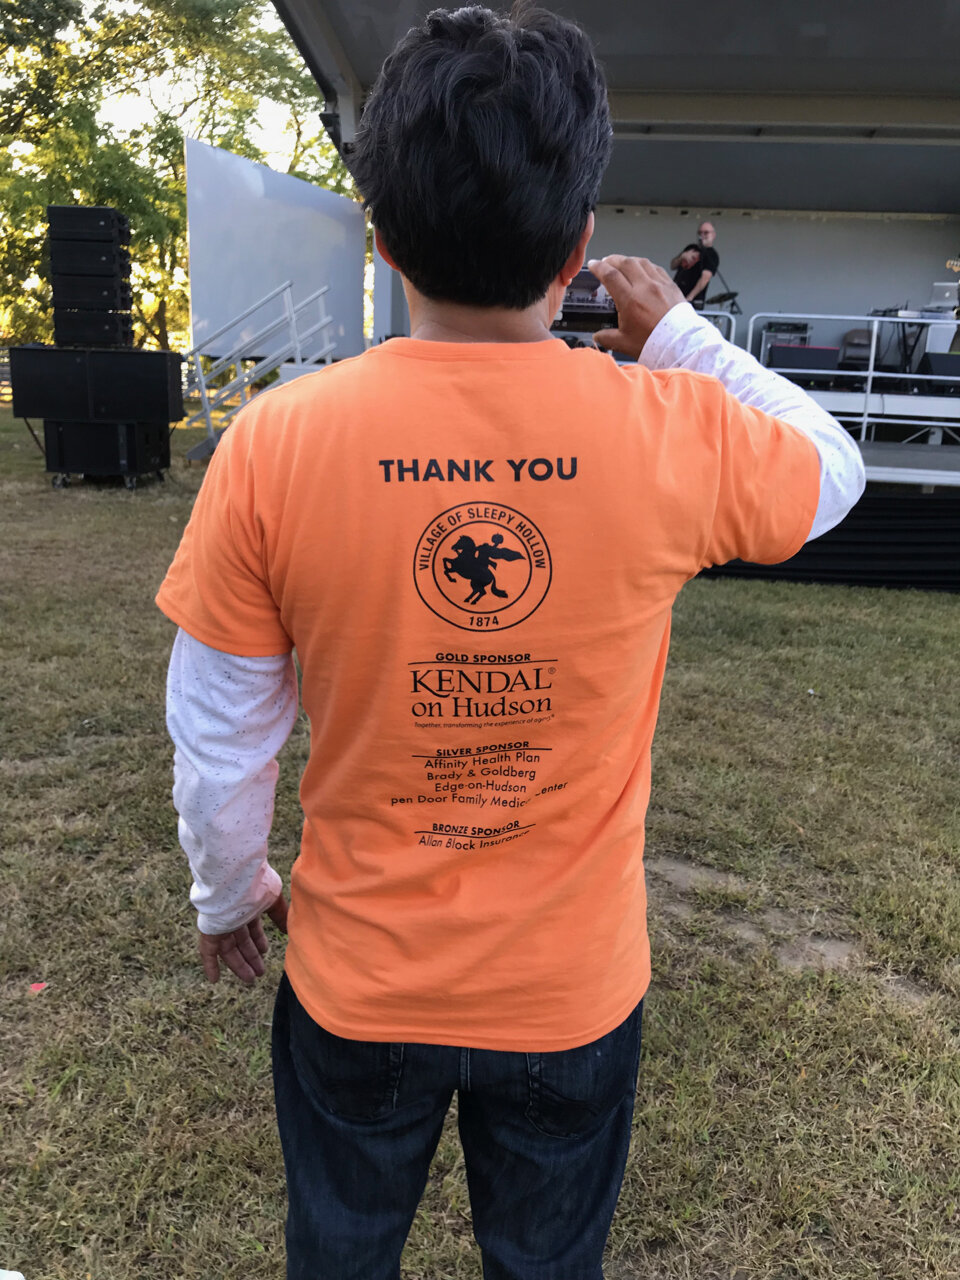 A volunteer wearing a shirt thanking Kendal for its support. - Photo by Rita Benzer